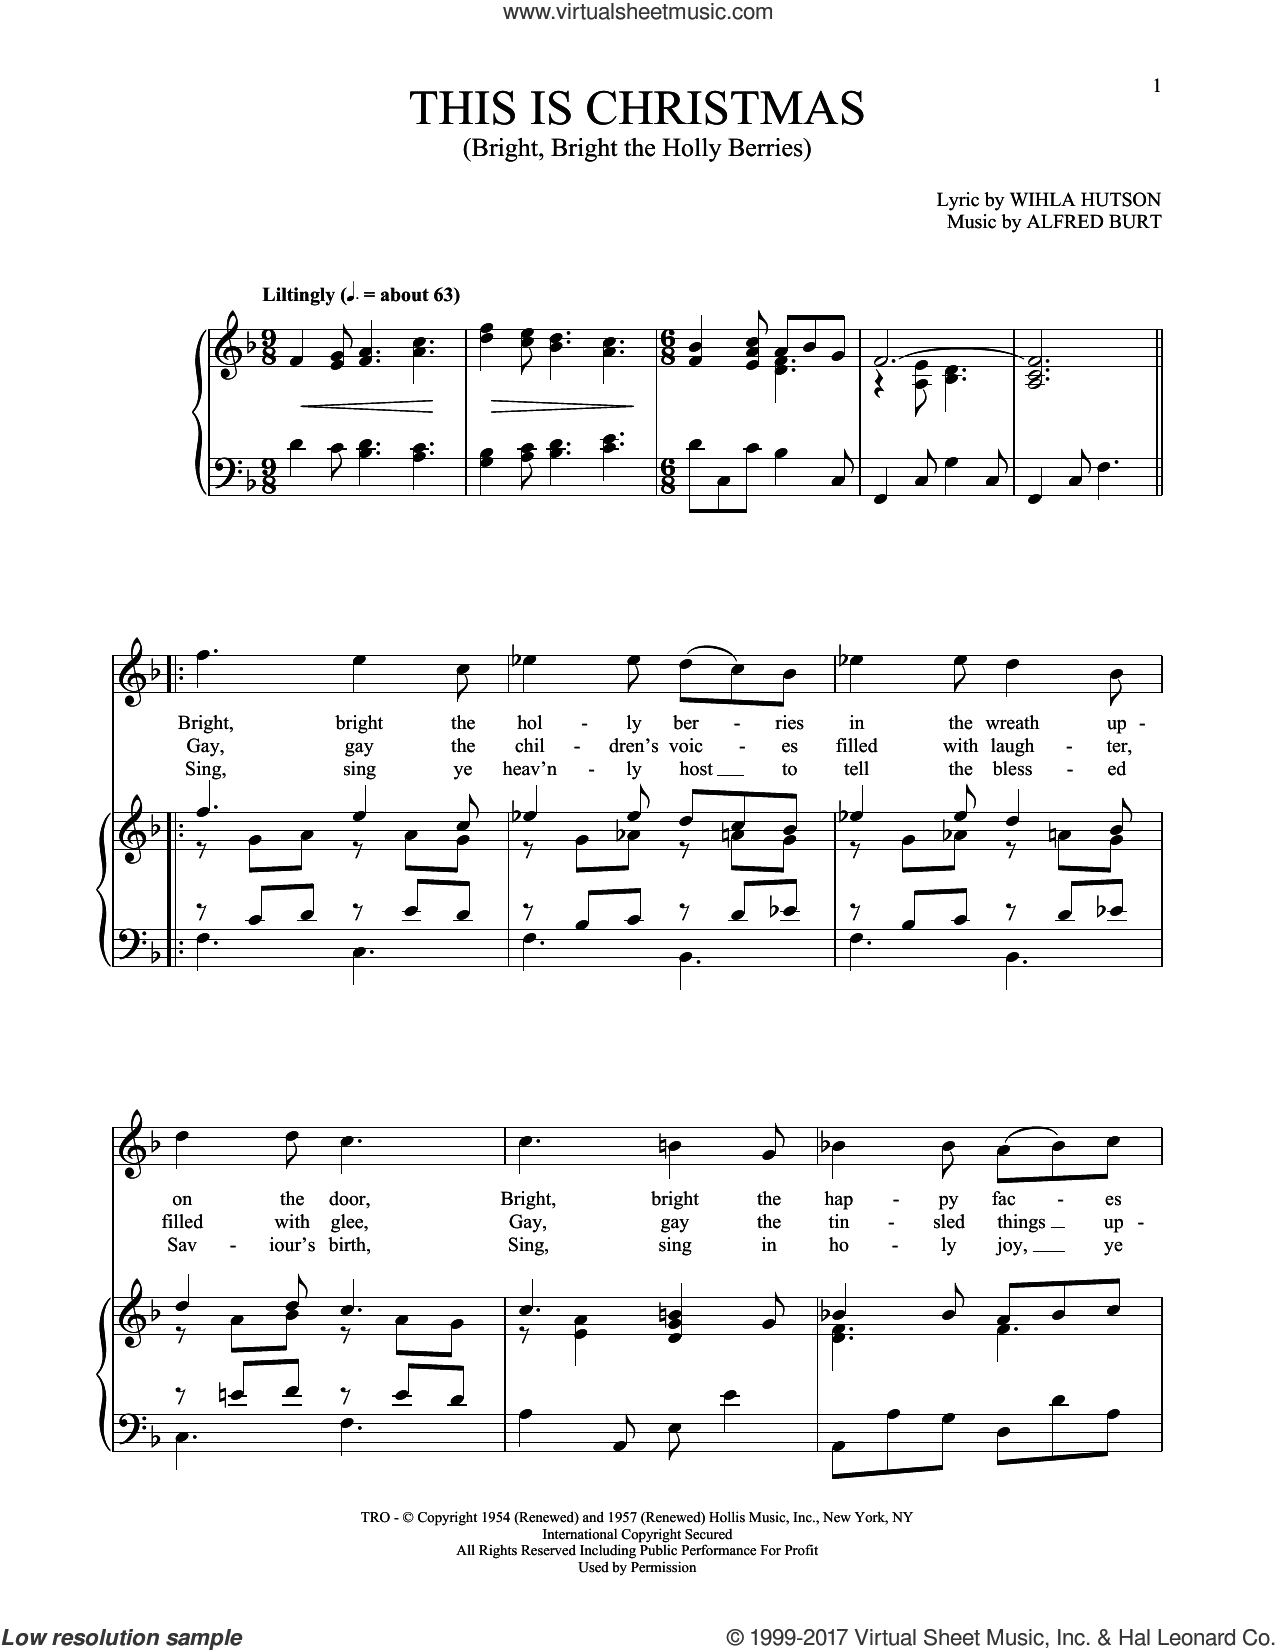 This Is Christmas (Bright, Bright The Holly Berries) sheet music for voice and piano (High Voice) by Alfred Burt and Wihla Hutson, intermediate skill level